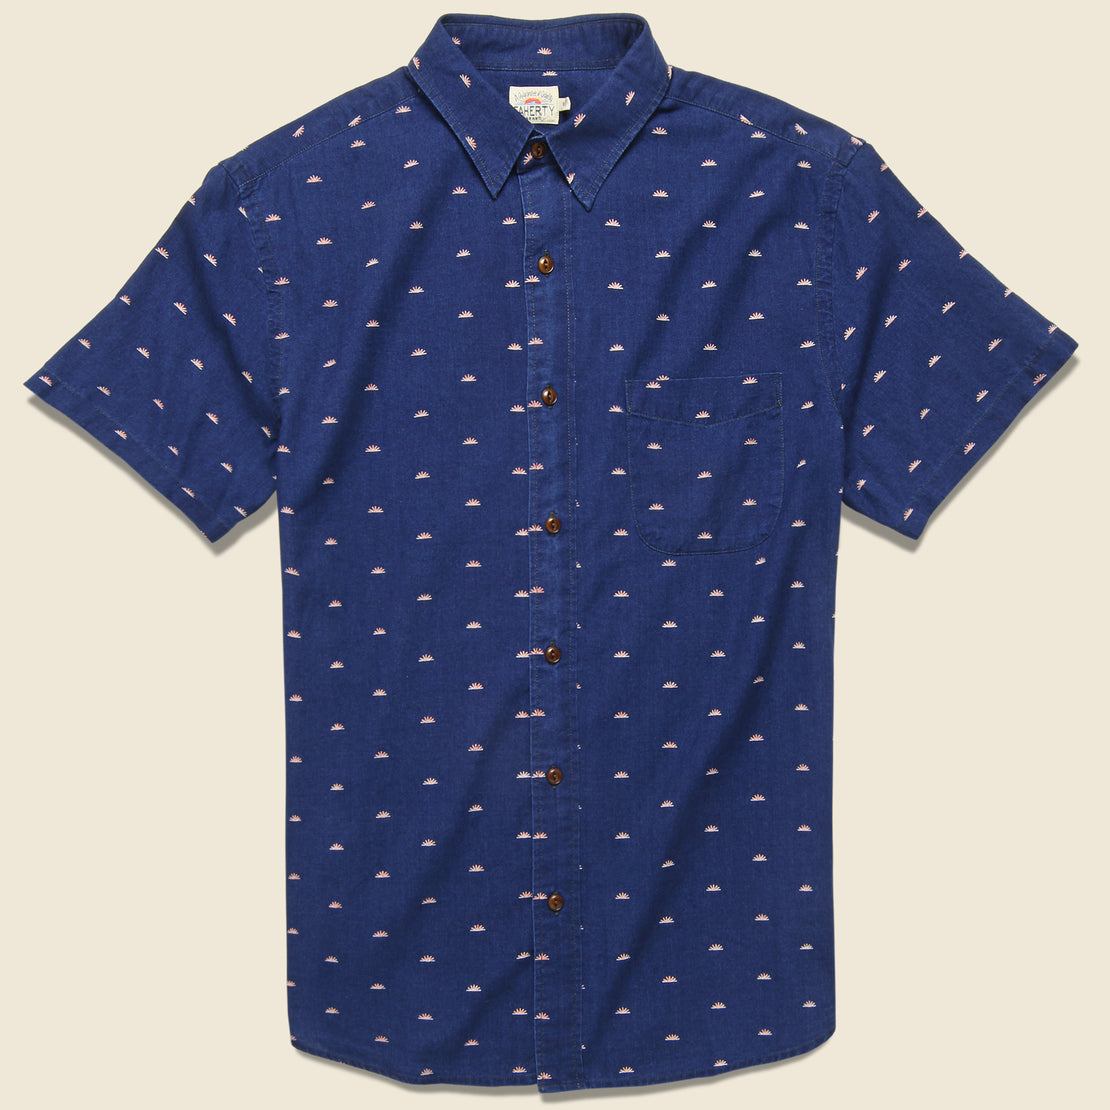 Faherty Coast Shirt - Sunrise Indigo